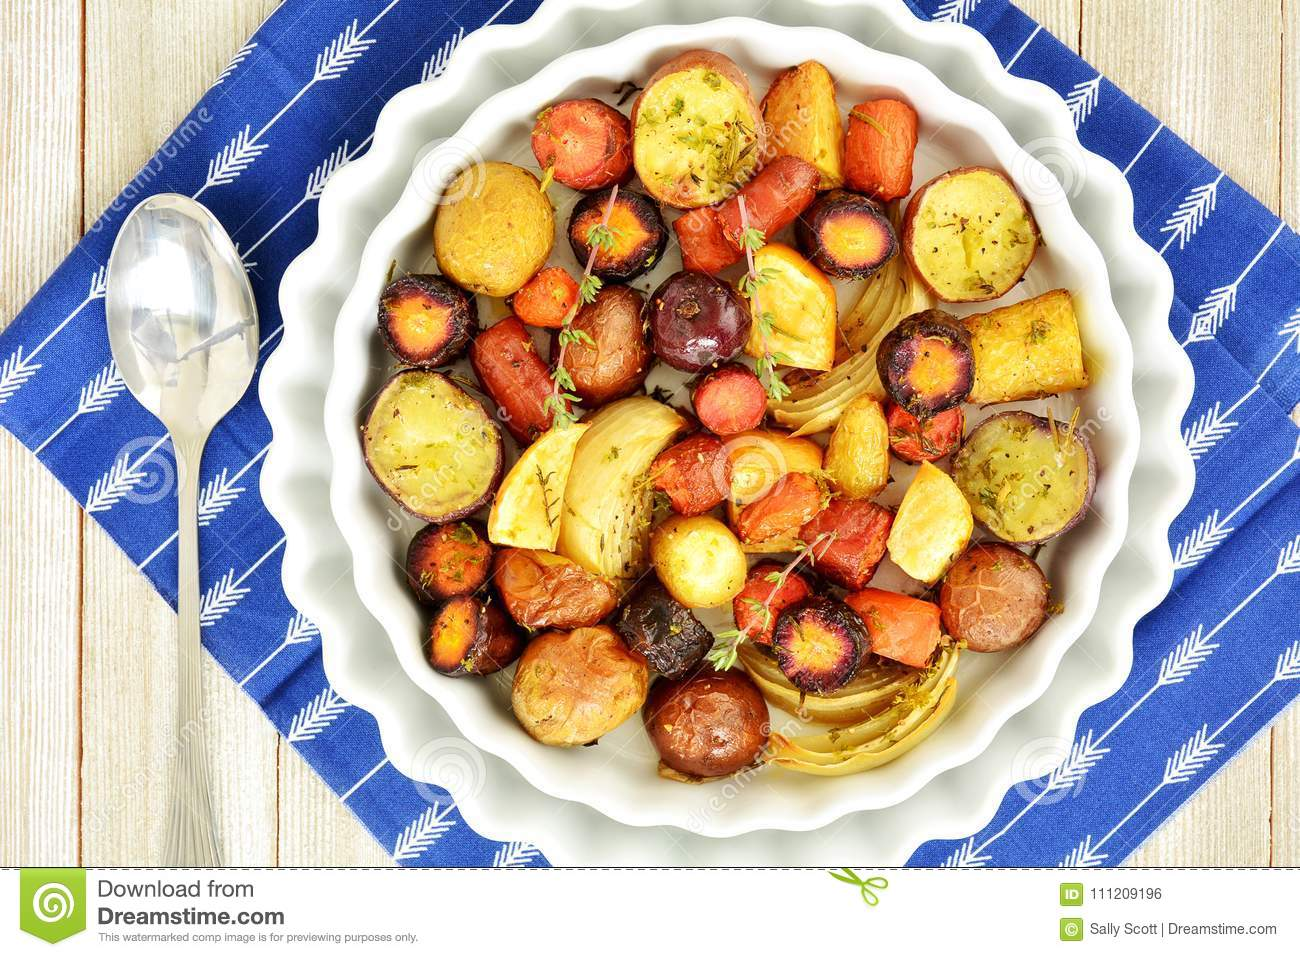 Roasted root vegetables from overhead